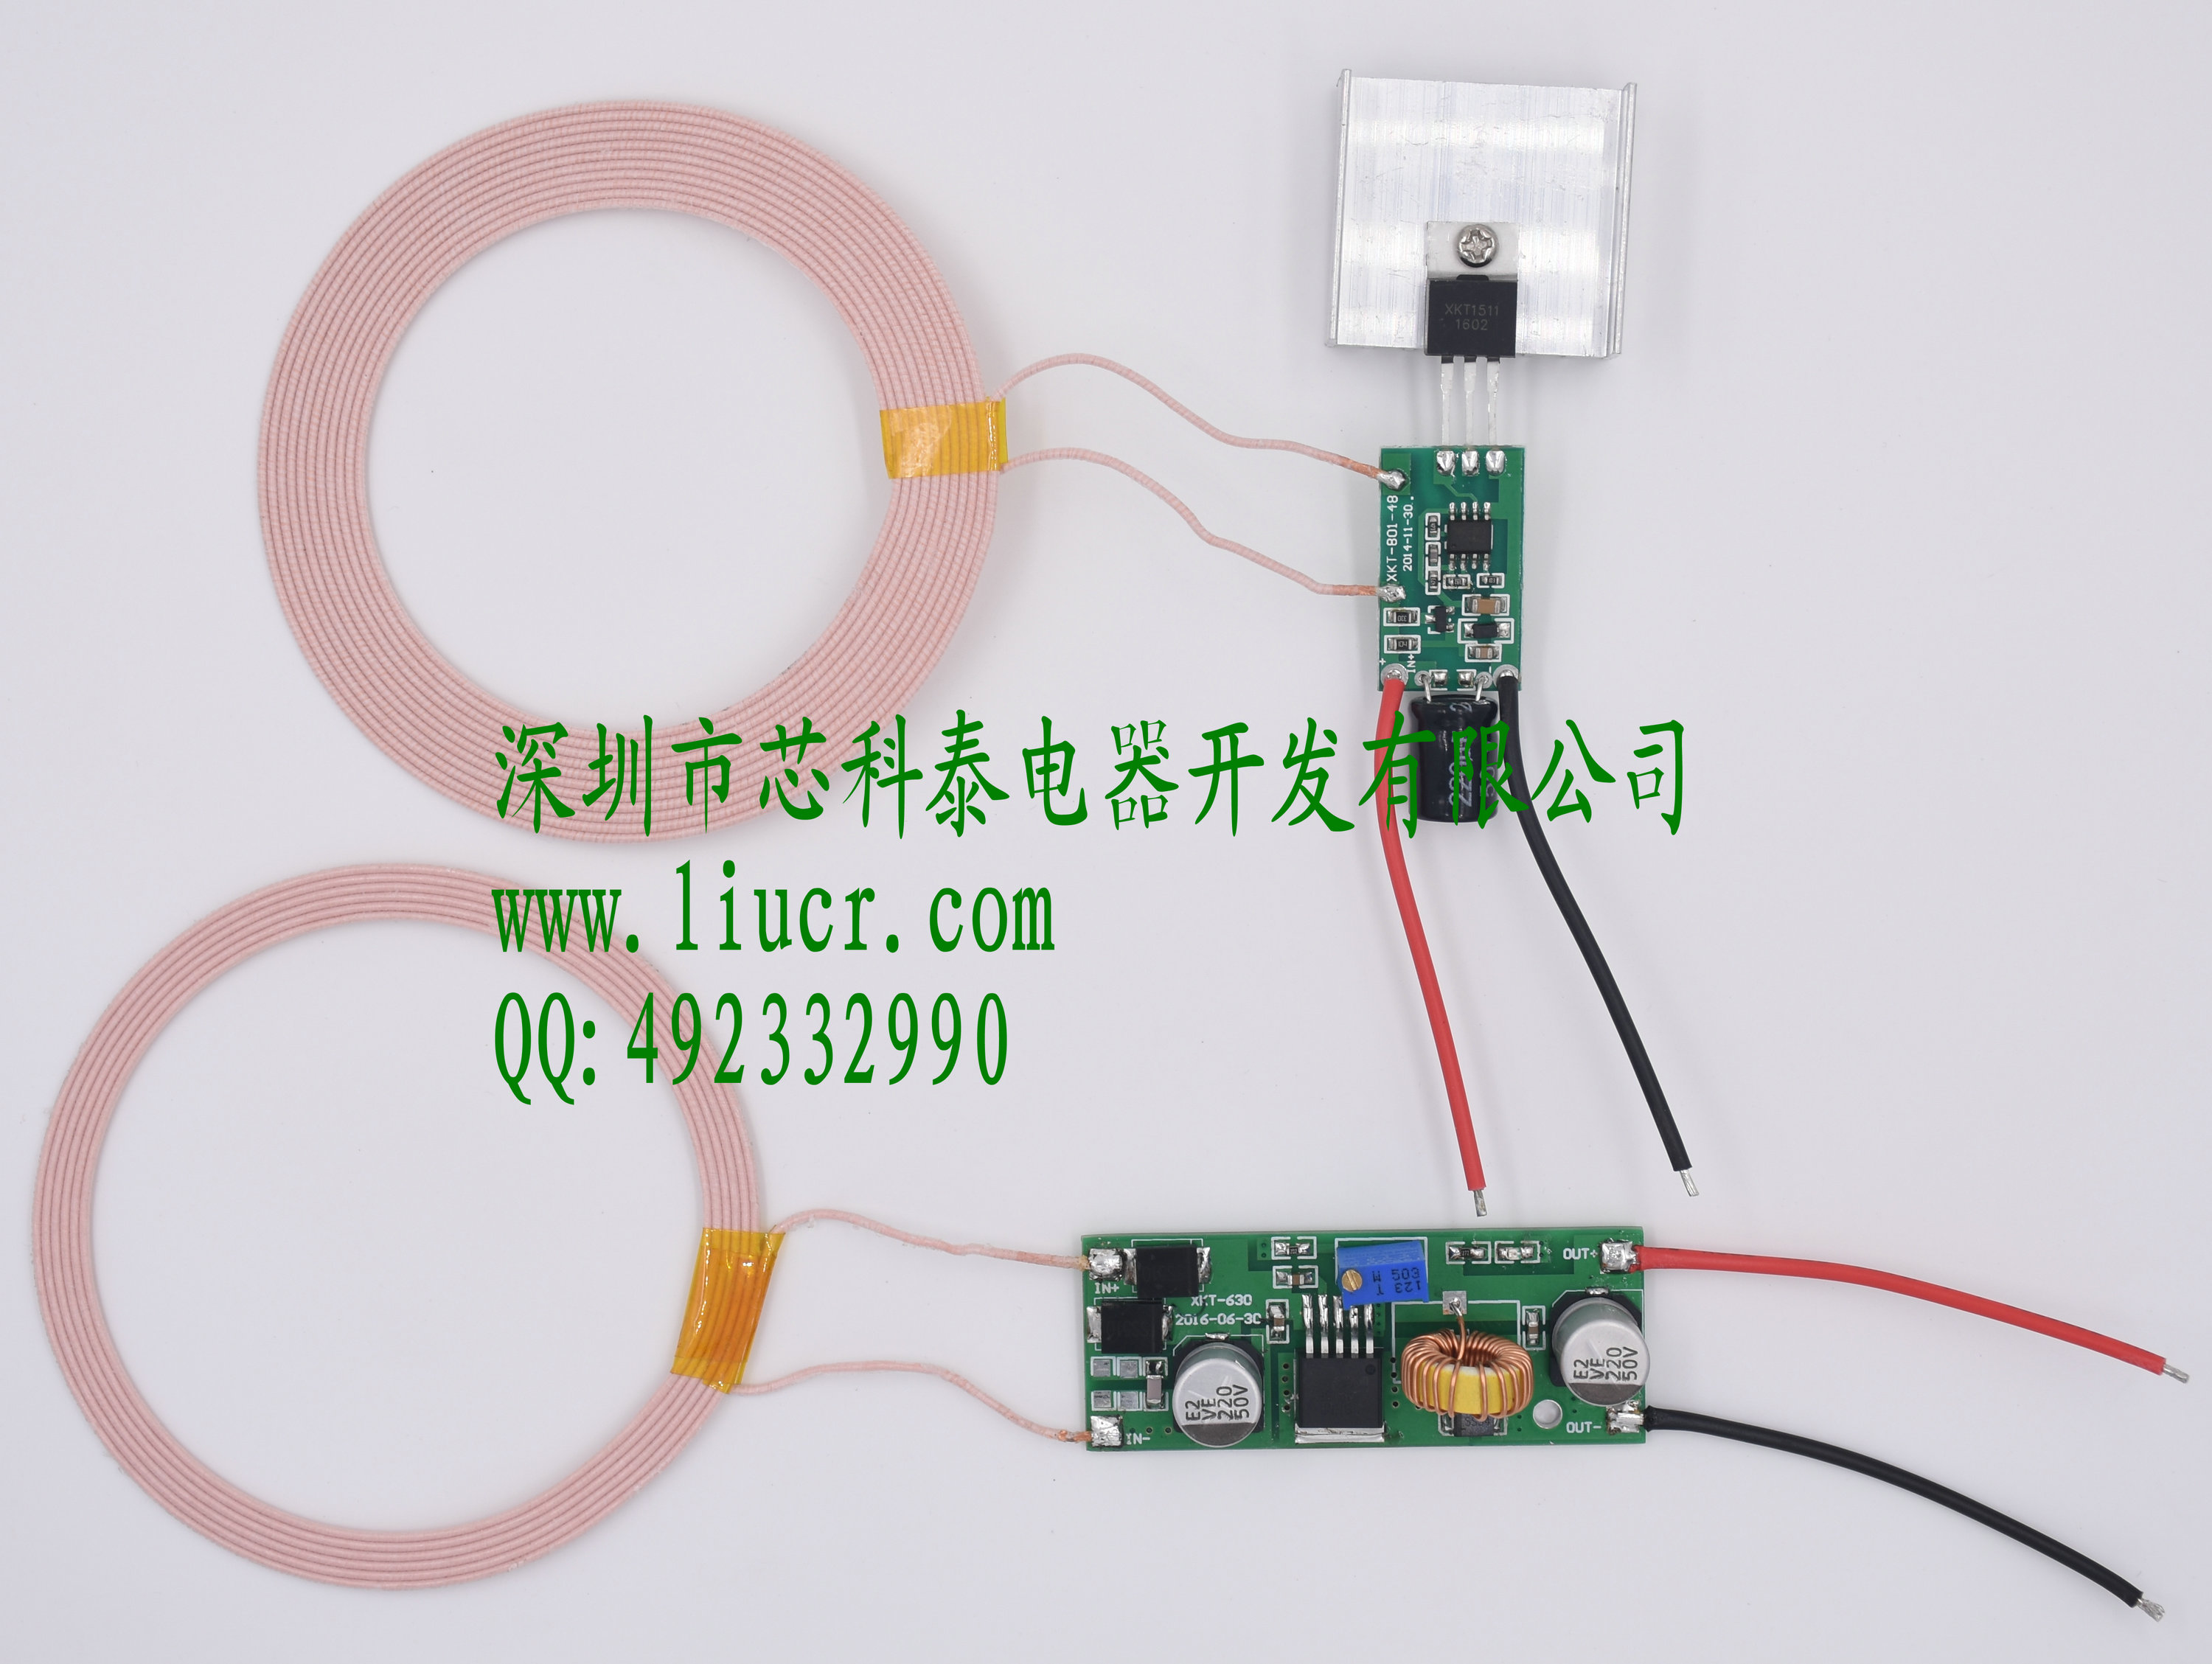 5V 5A high current 24V low voltage wireless charging module IC scheme 5v1 5a high current wireless charging module power supply module ic chip solution